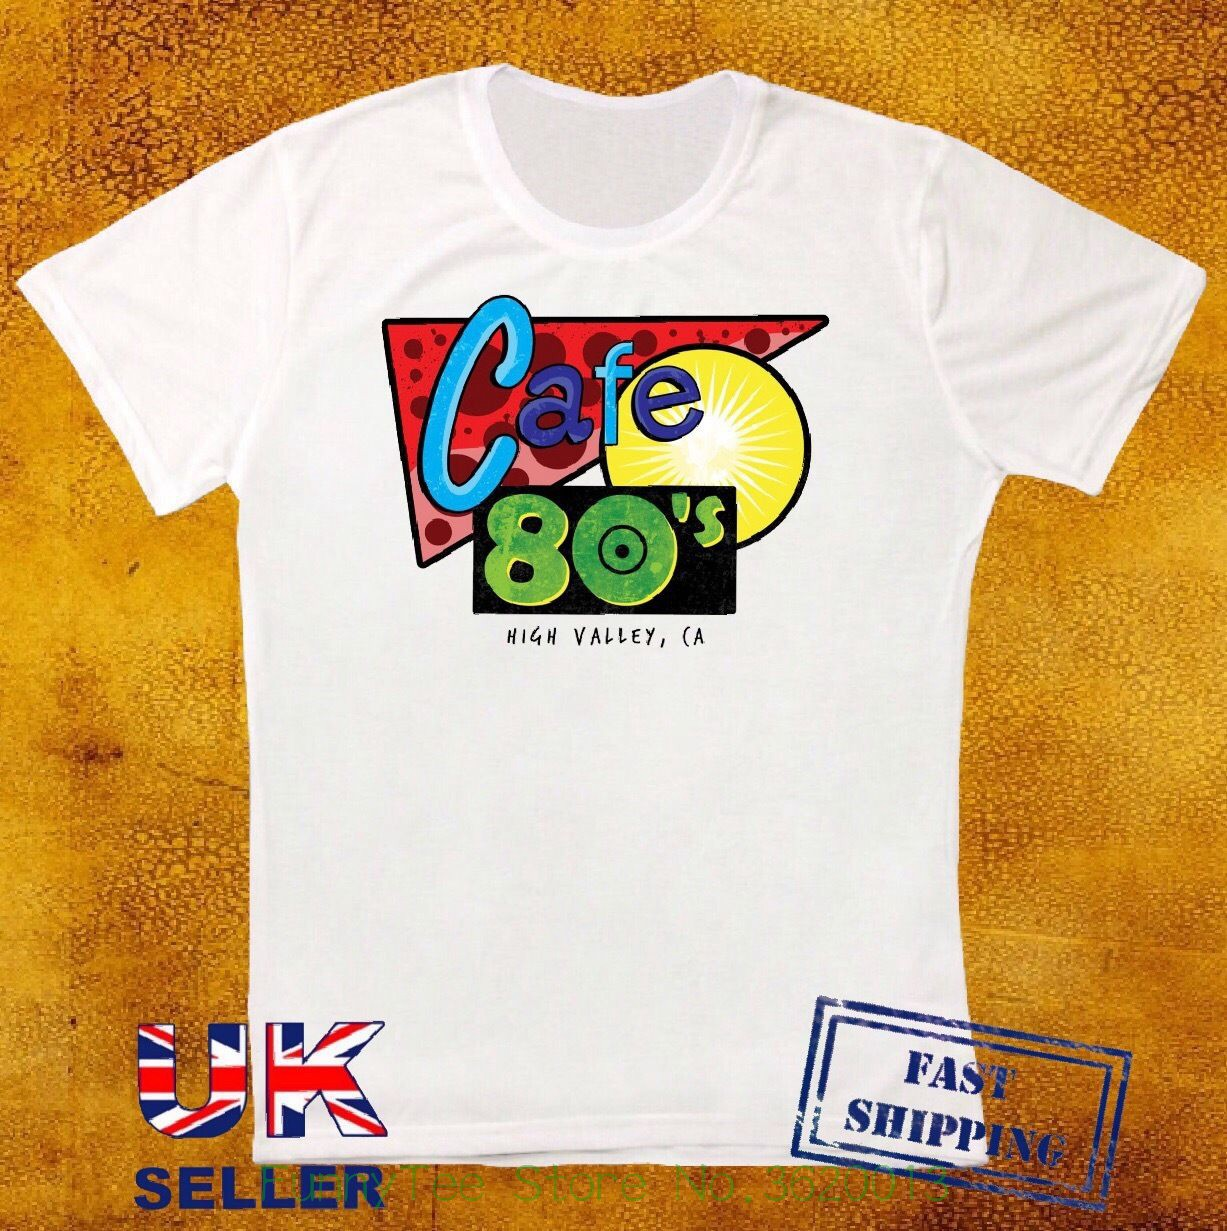 2 Inspired Cafe 80s Sign Film Unisex T Shirt Time Travel 117